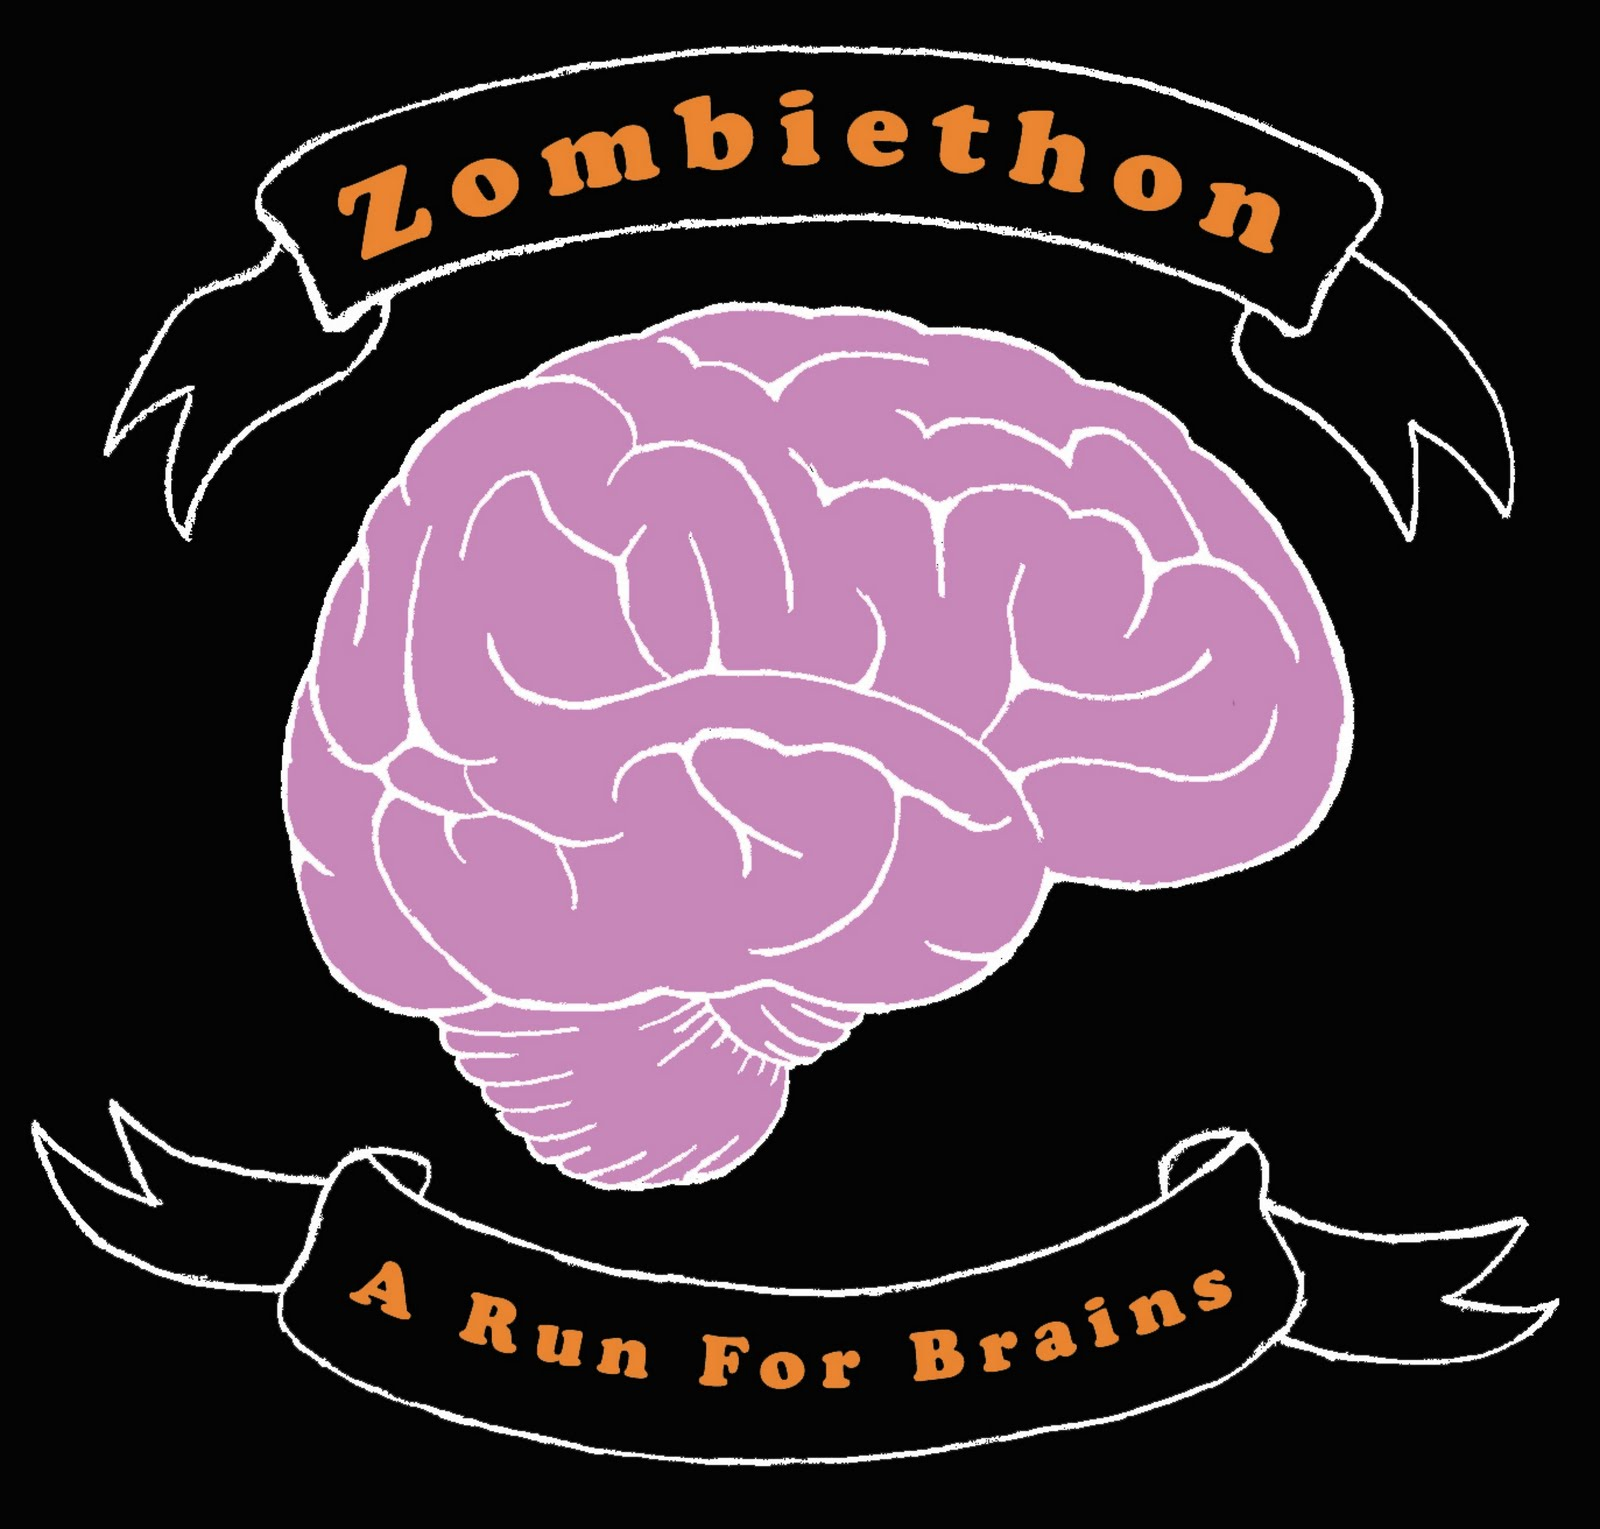 Zombiethon